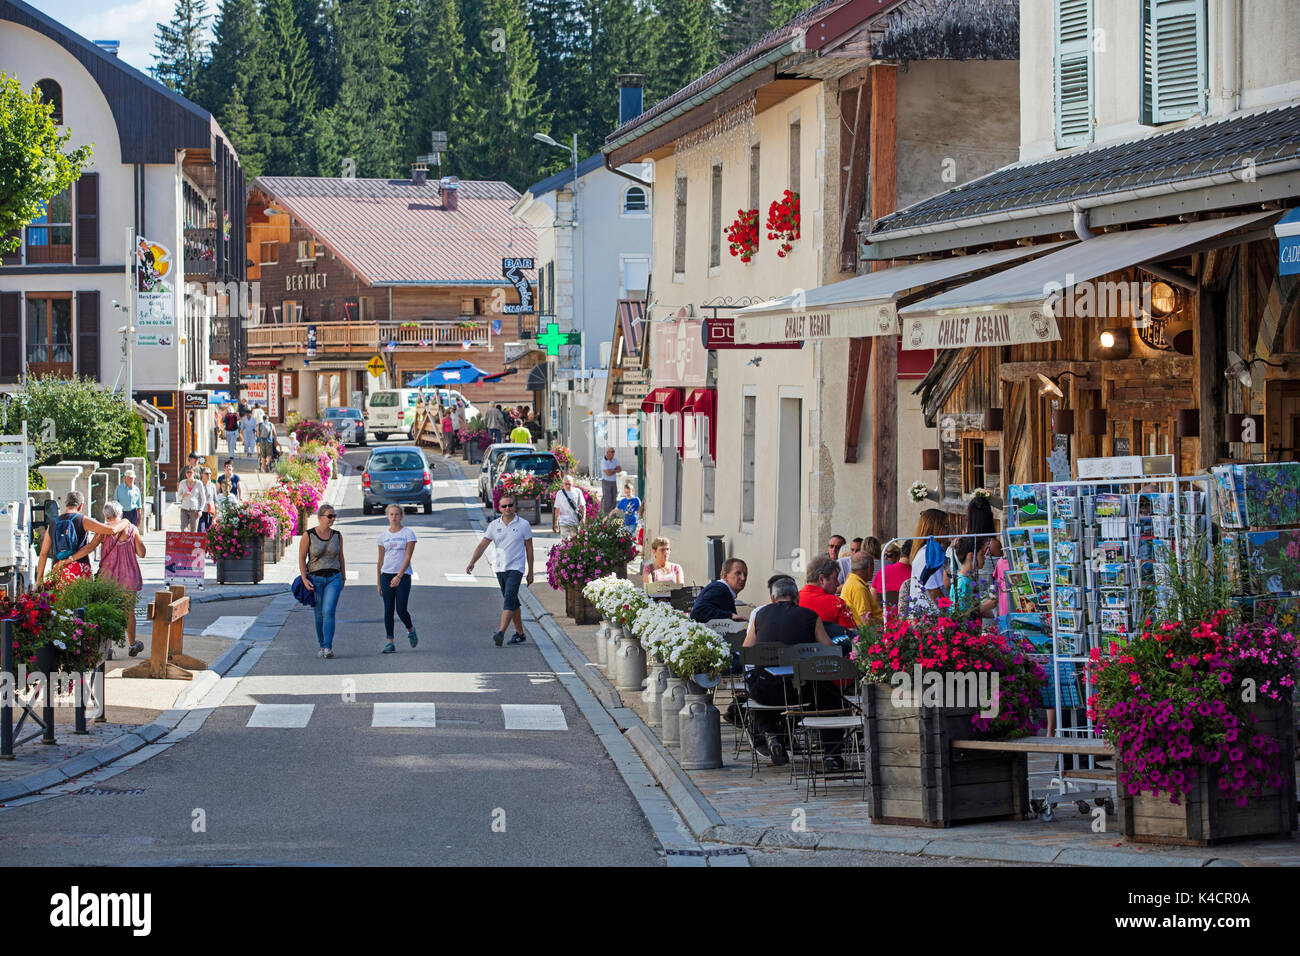 Shopping street in the village Les Rousses in the Canton of Morez of Jura department, Bourgogne-Franche-Comté, France - Stock Image